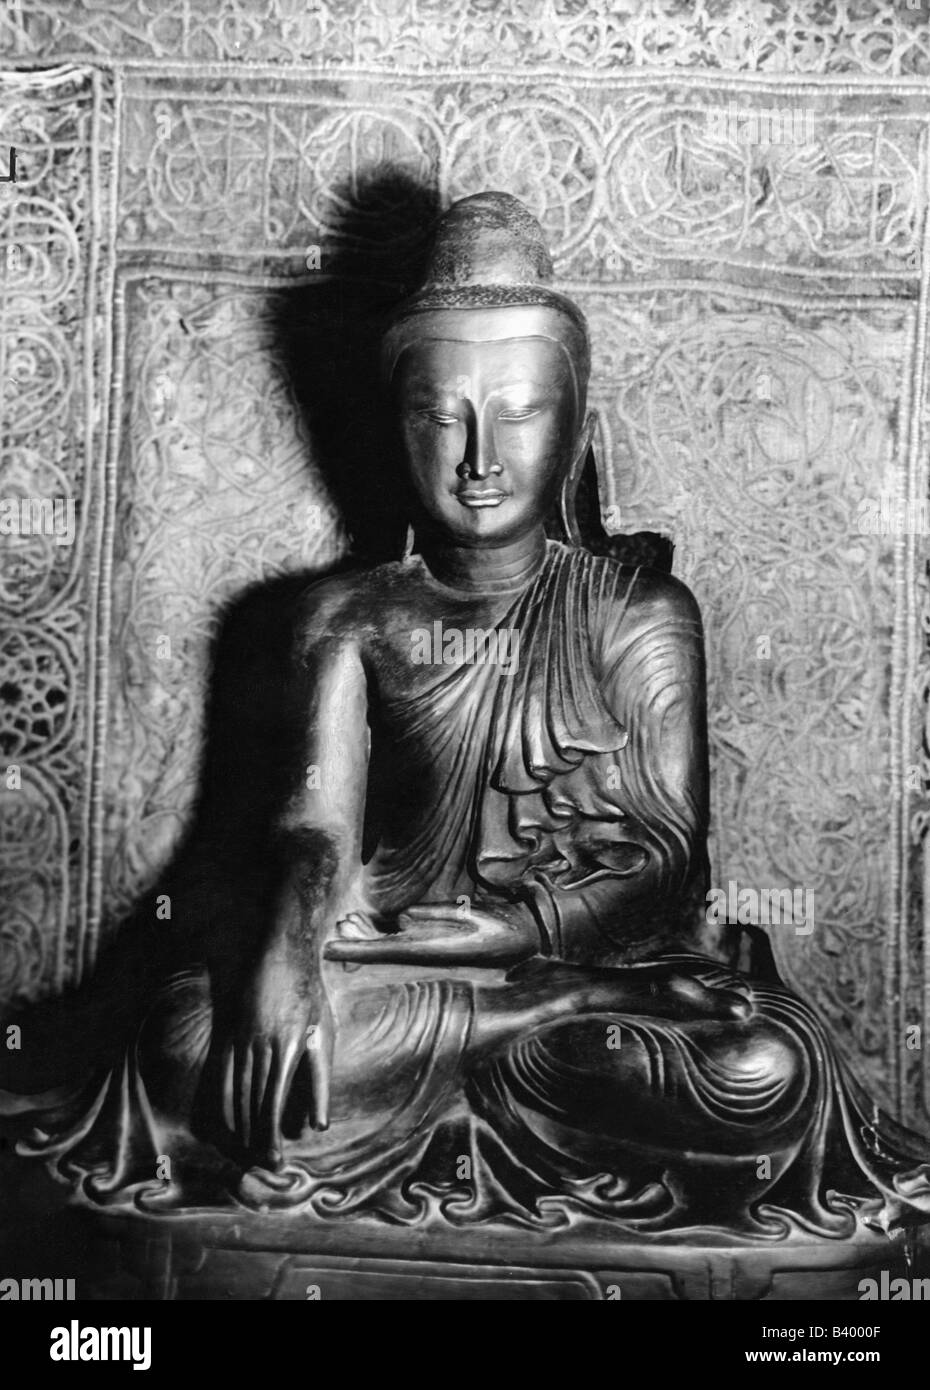 Buddha, Prince Siddharta Gautama, 563 BC - 483 AC, indian founder of a religion, Buddhism, Additional-Rights-Clearances - Stock Image